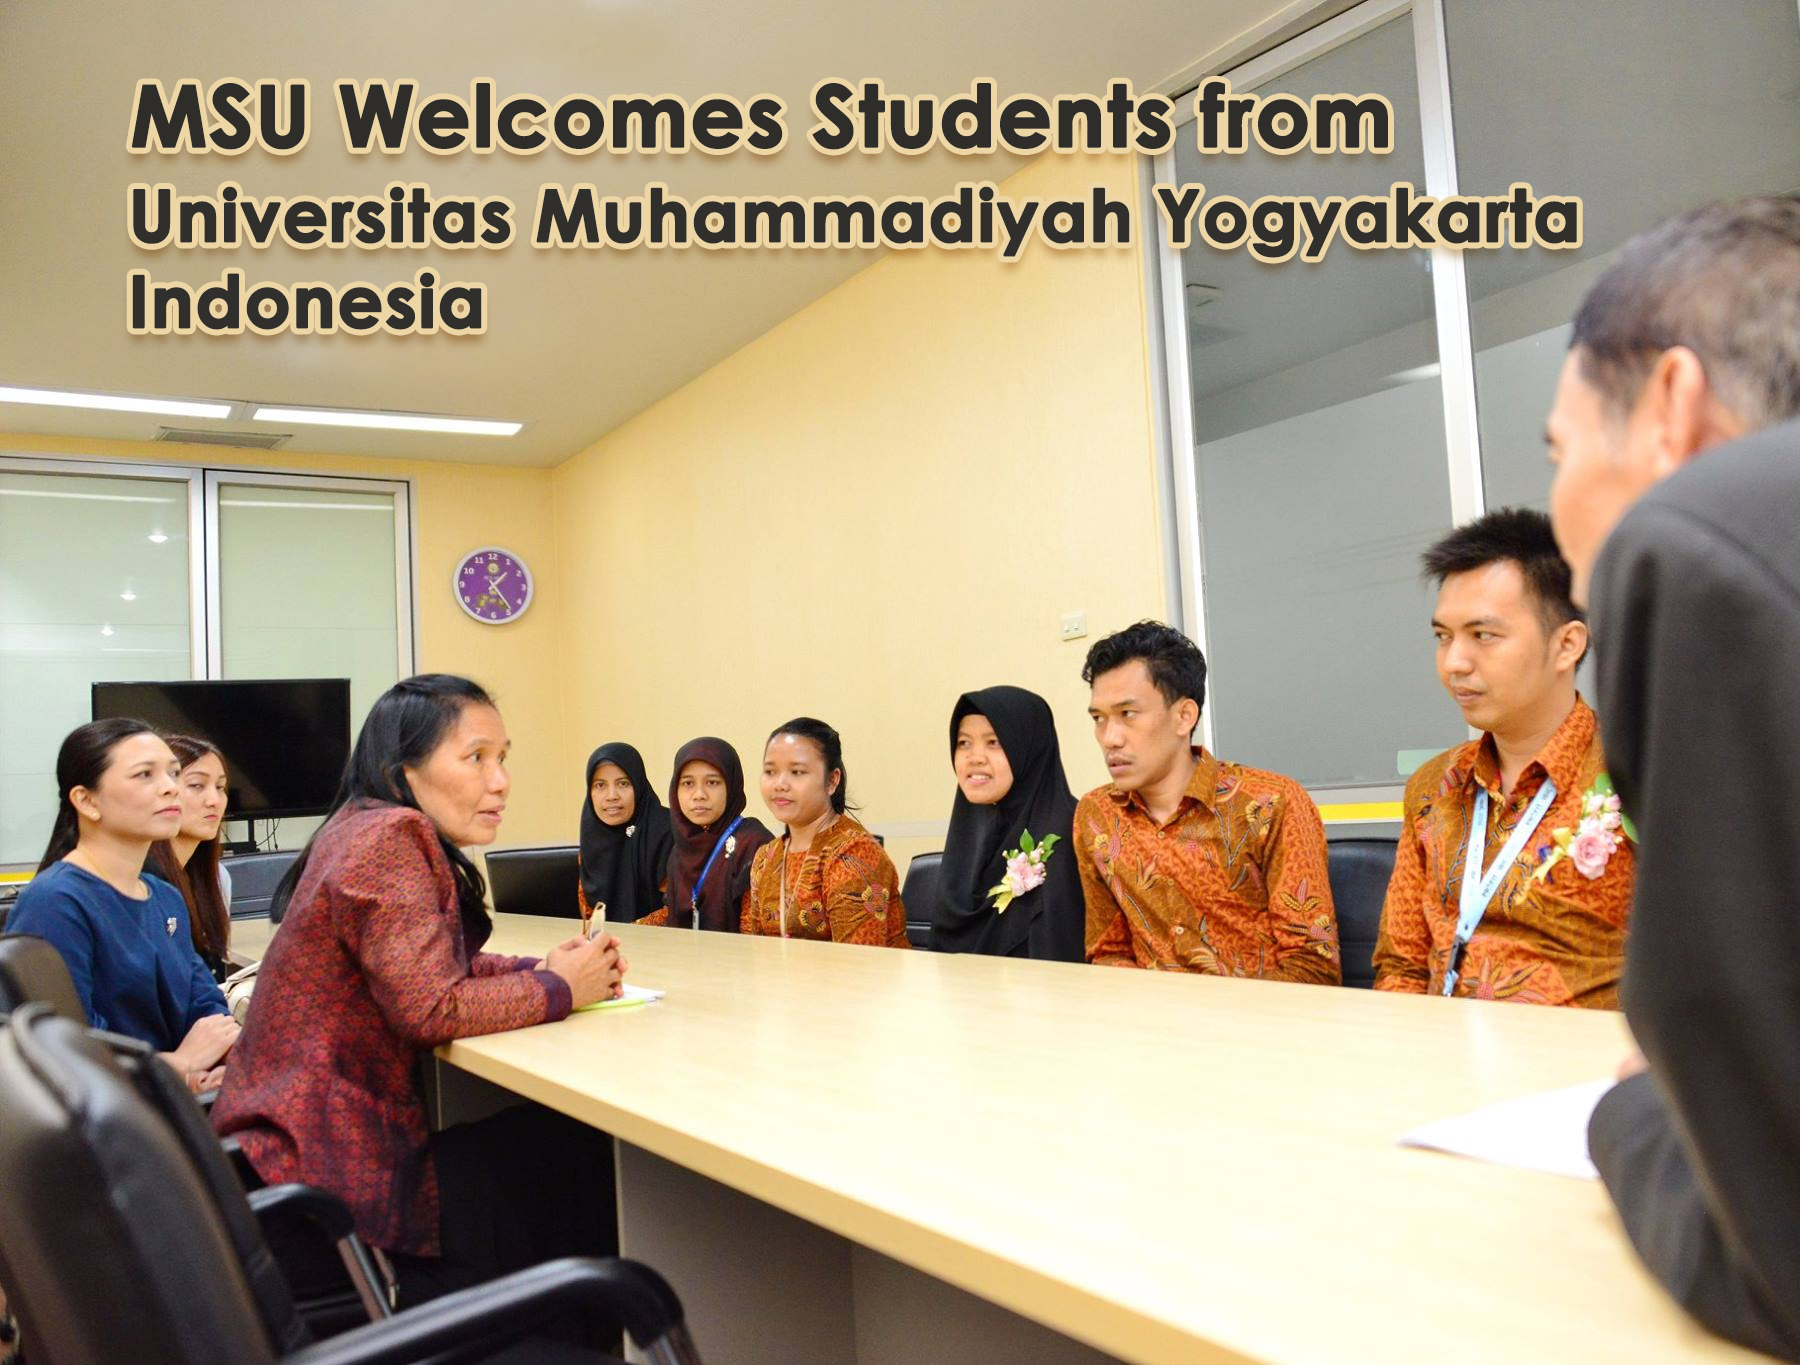 MSU Welcomes Students from Universitas Muhammadiyah Yogyakarta,Indonesia